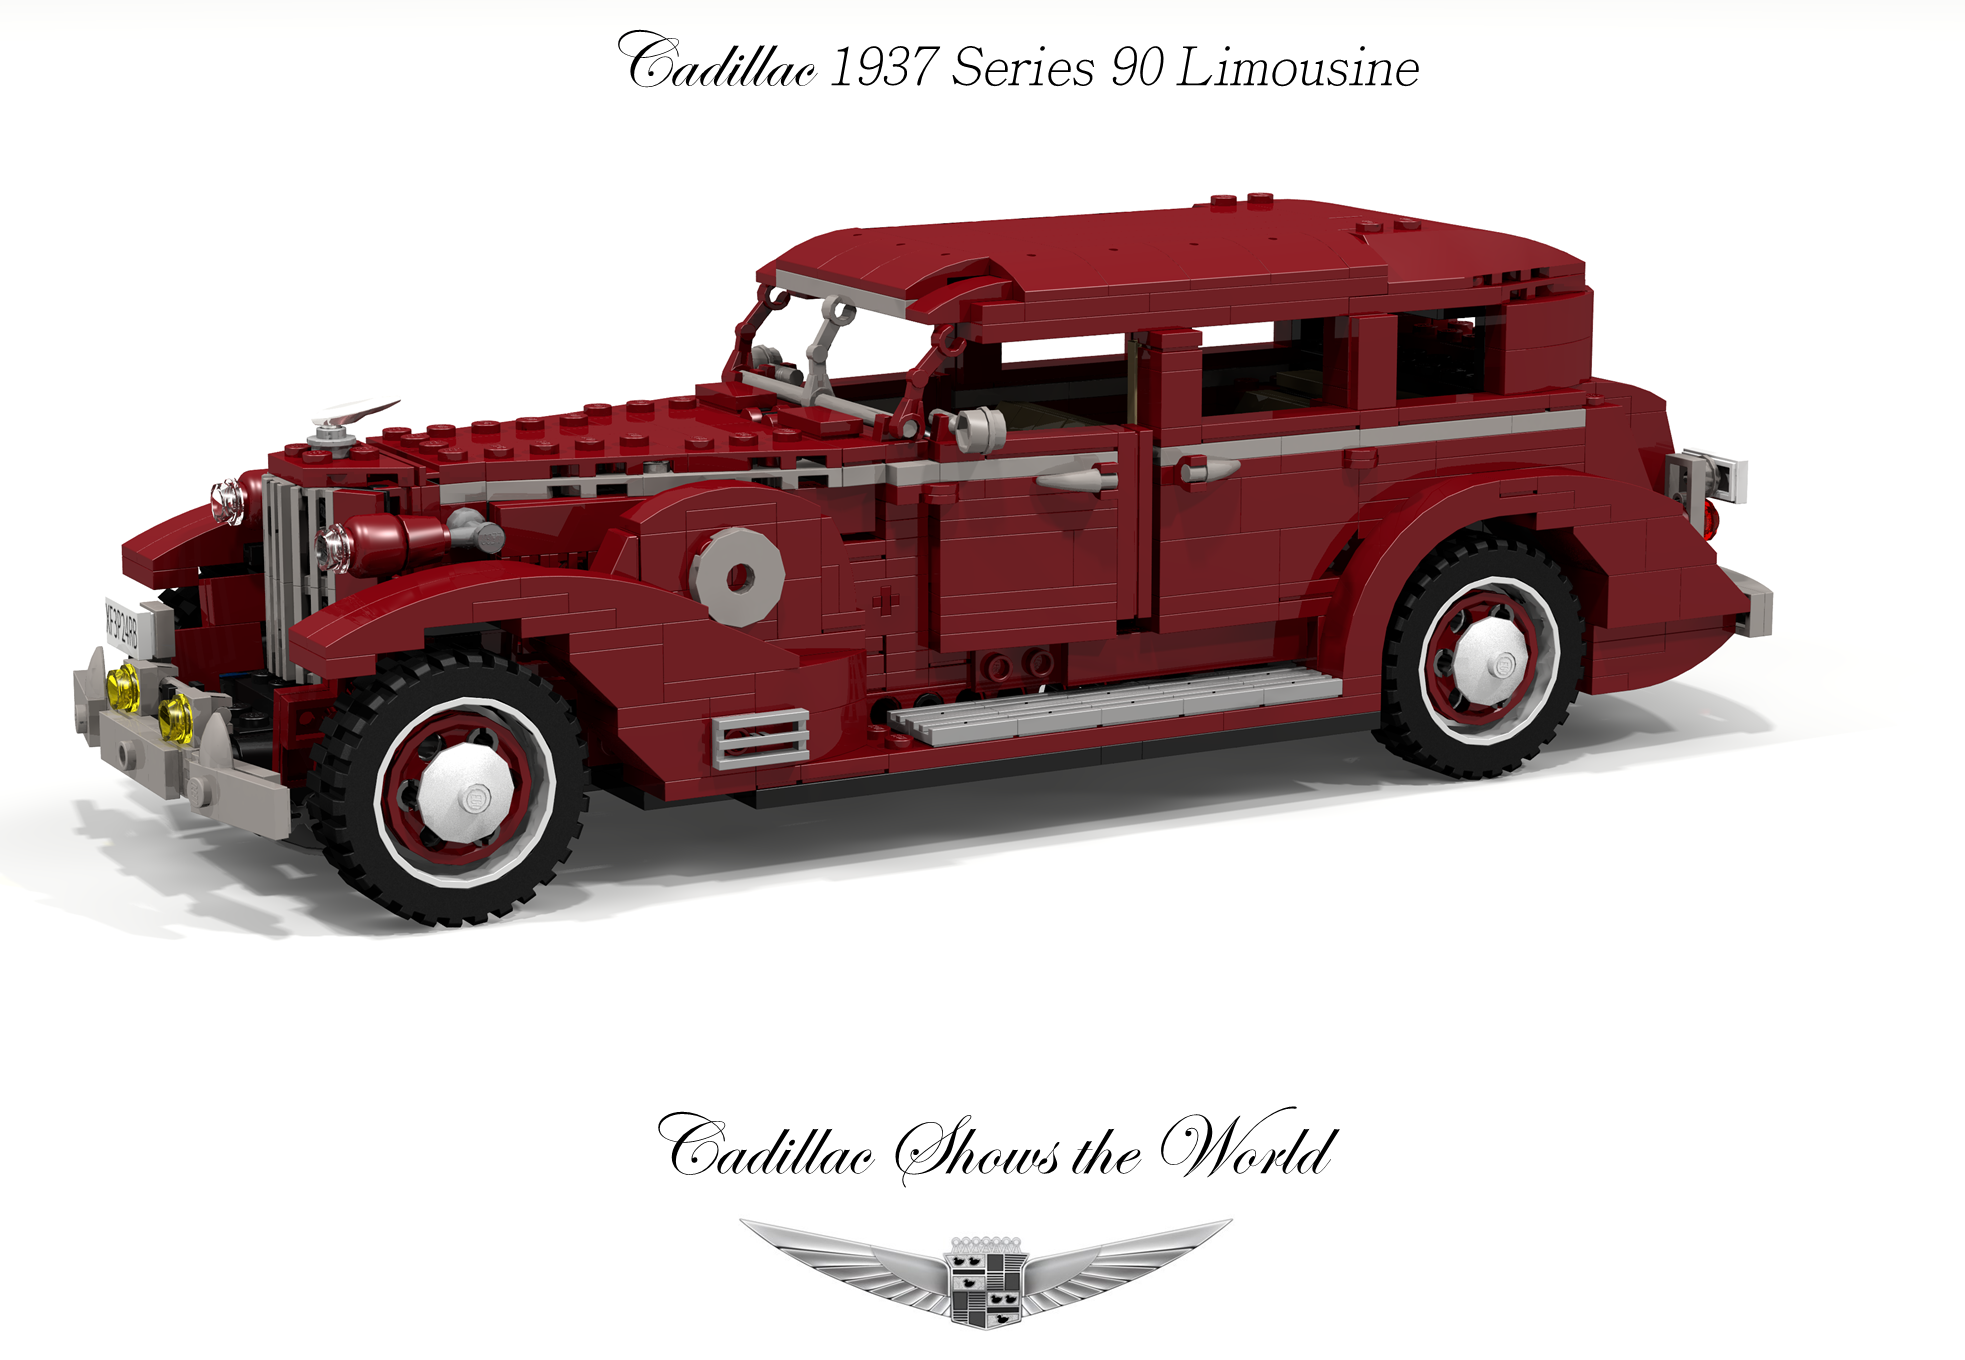 1937_cadillac_series_90_limousine.png